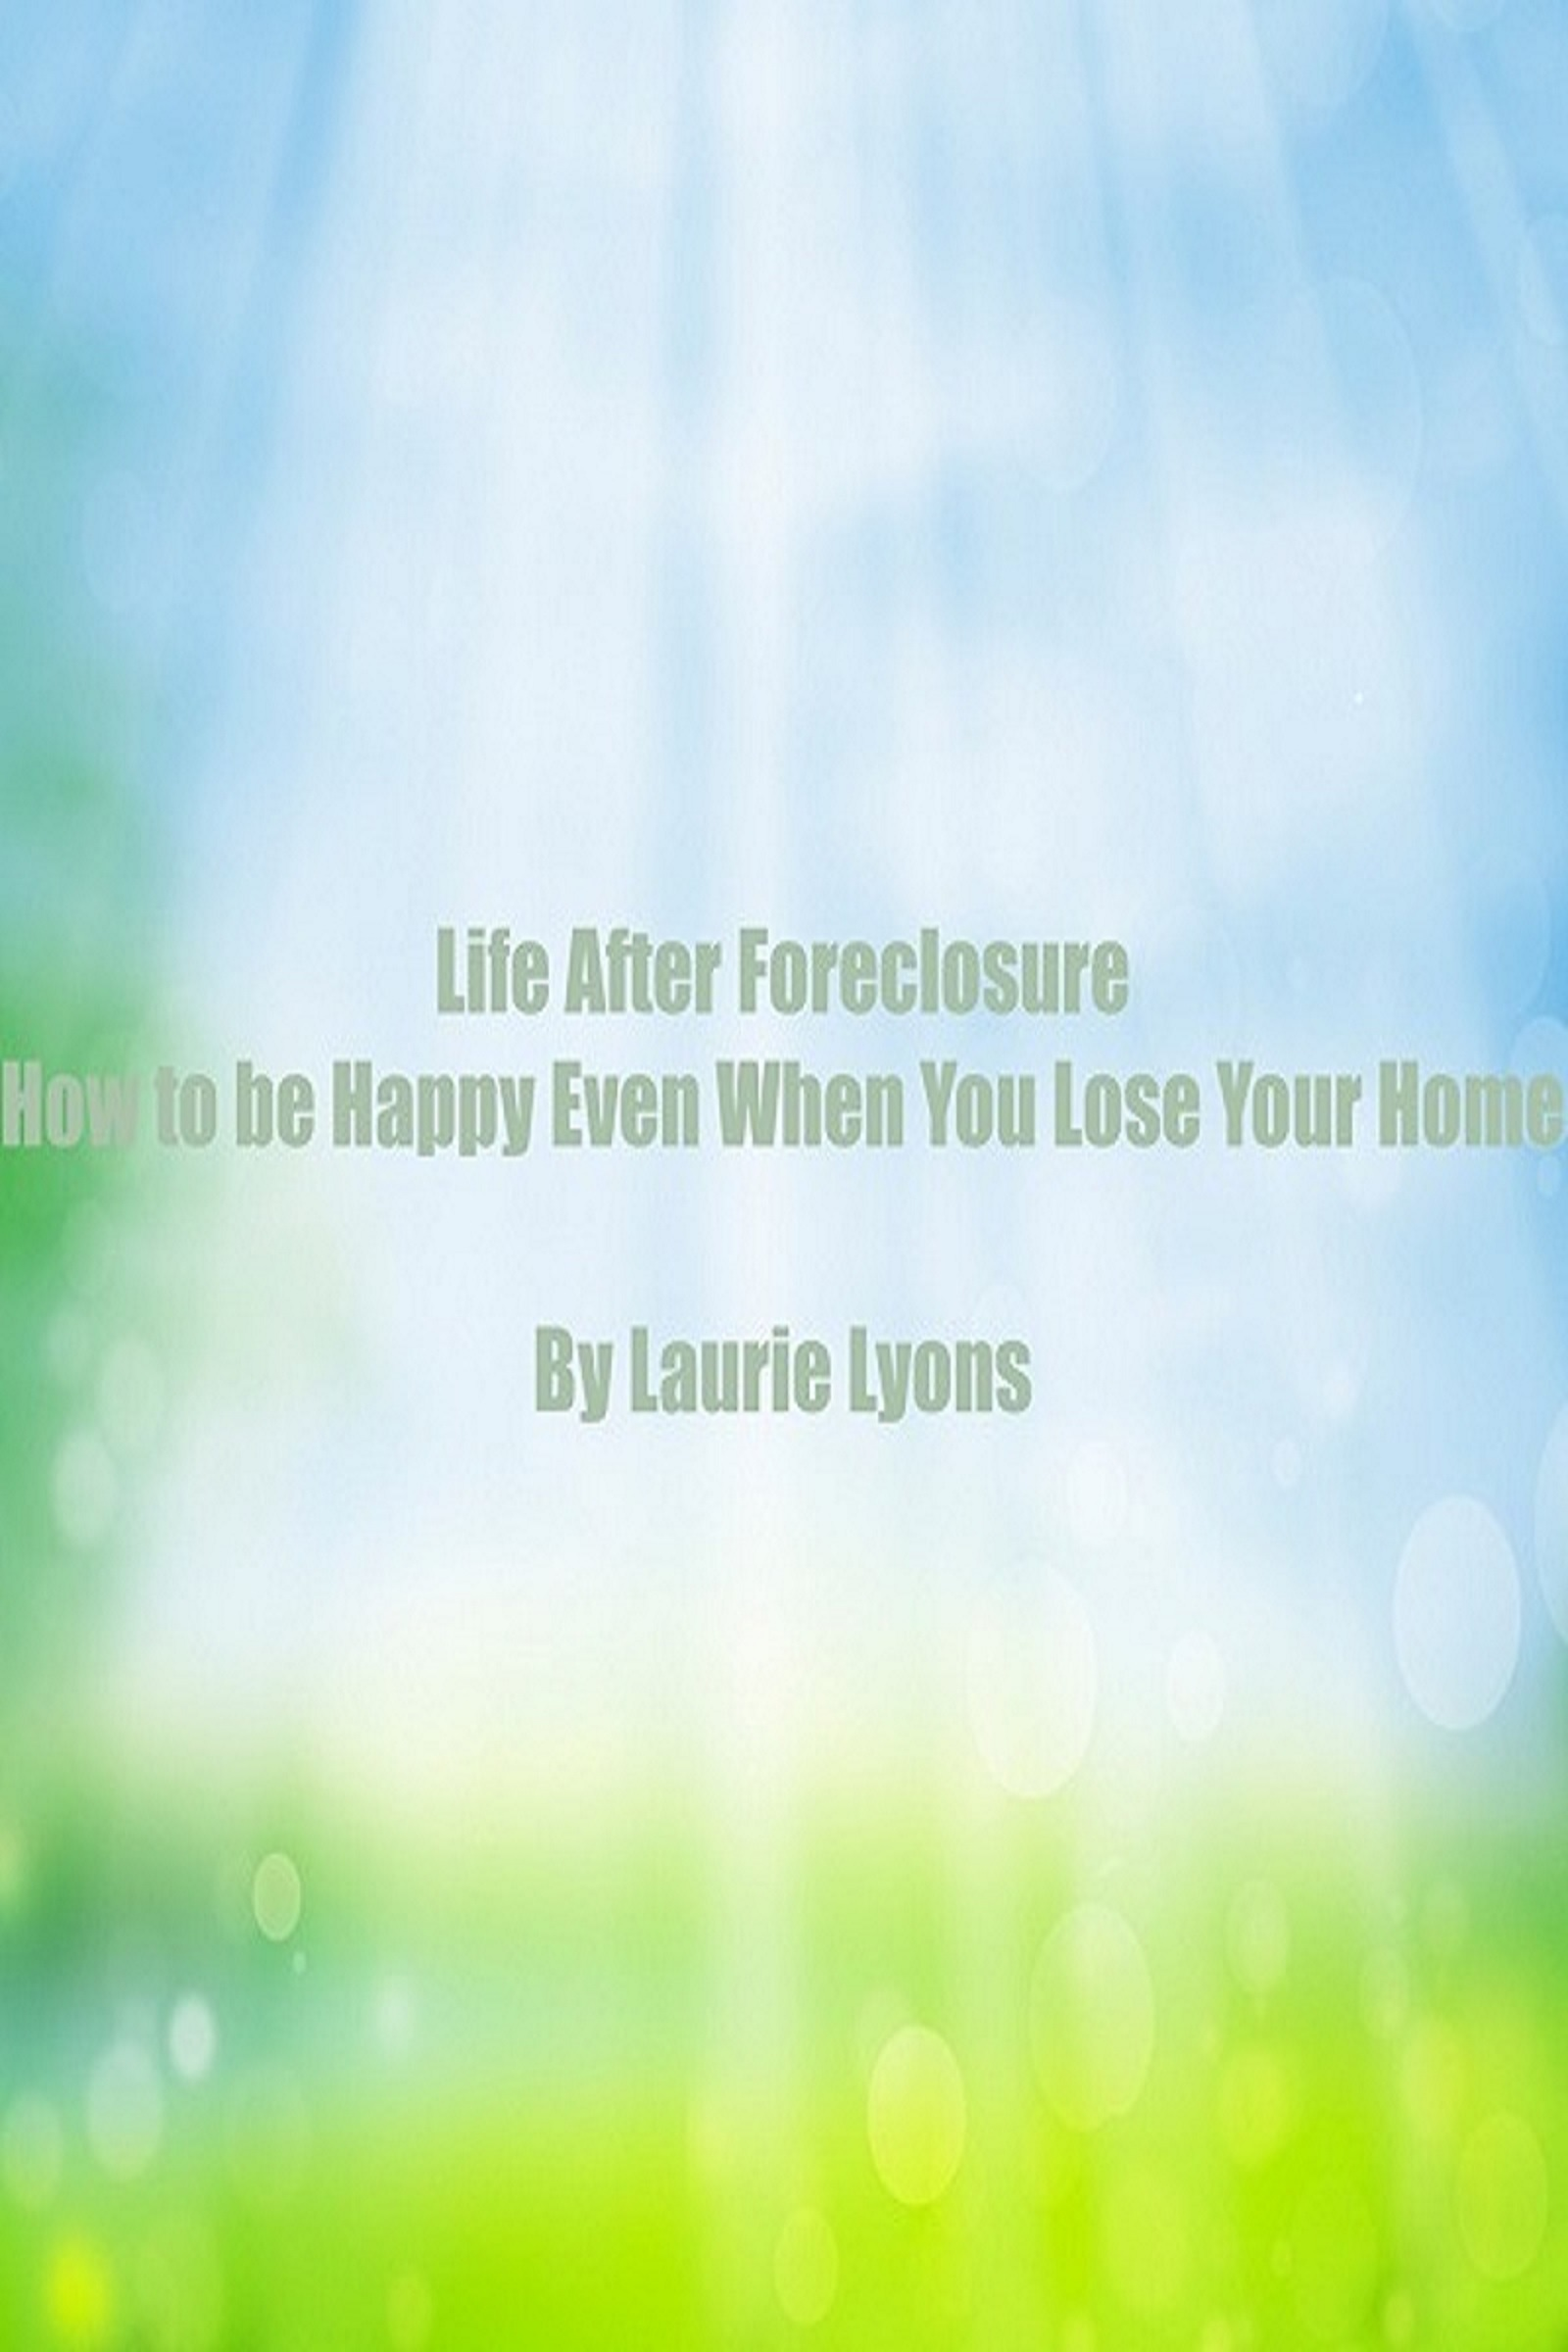 Life After Foreclosure How to be Happy Even When You Lose Your Home